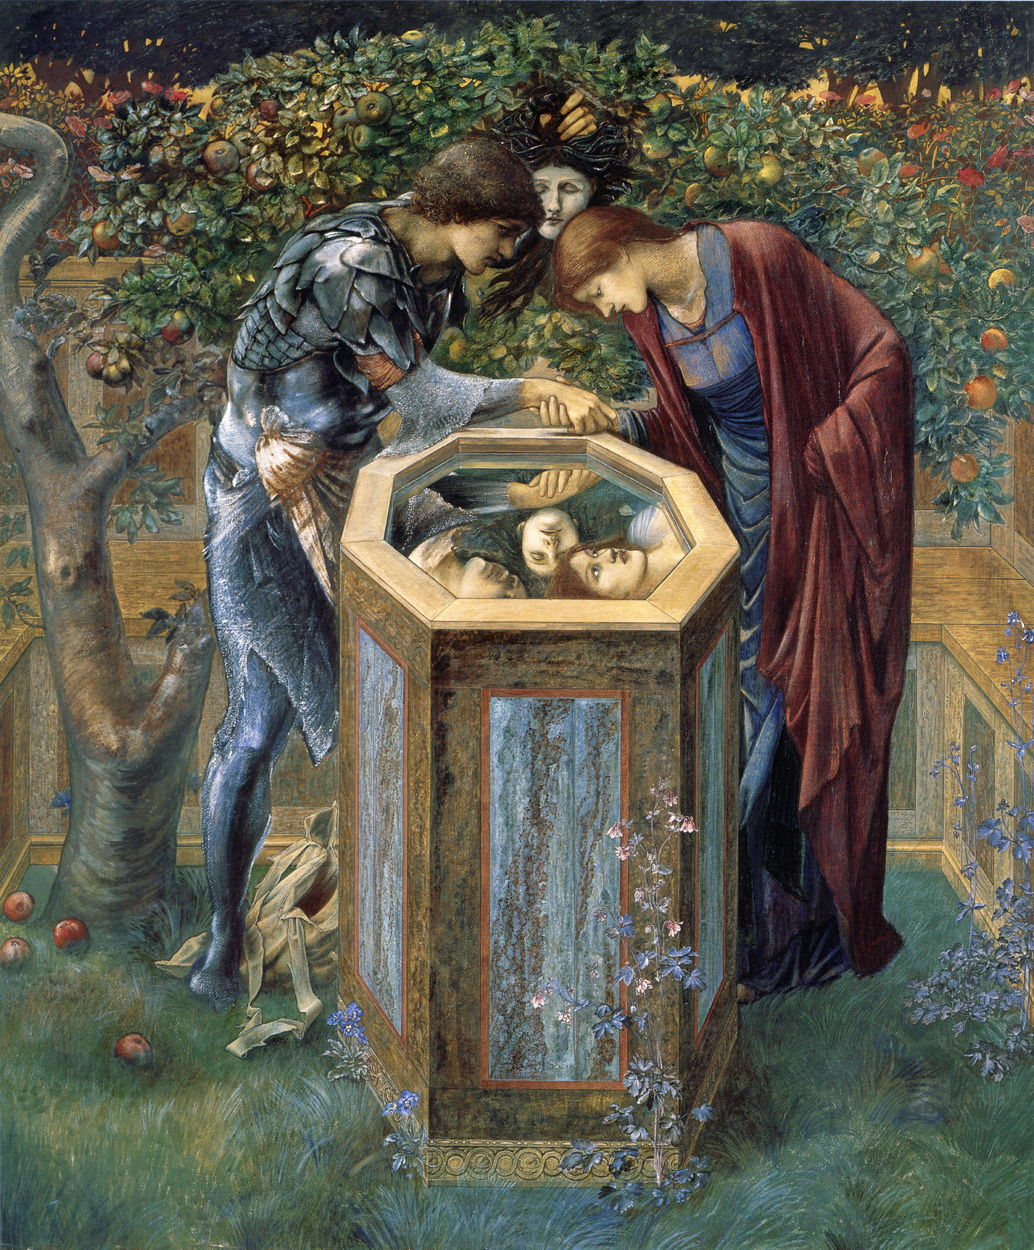 burne jones Cycle Persee 10 1887 The-Baleful-Head-Southampton City Art Gallery,